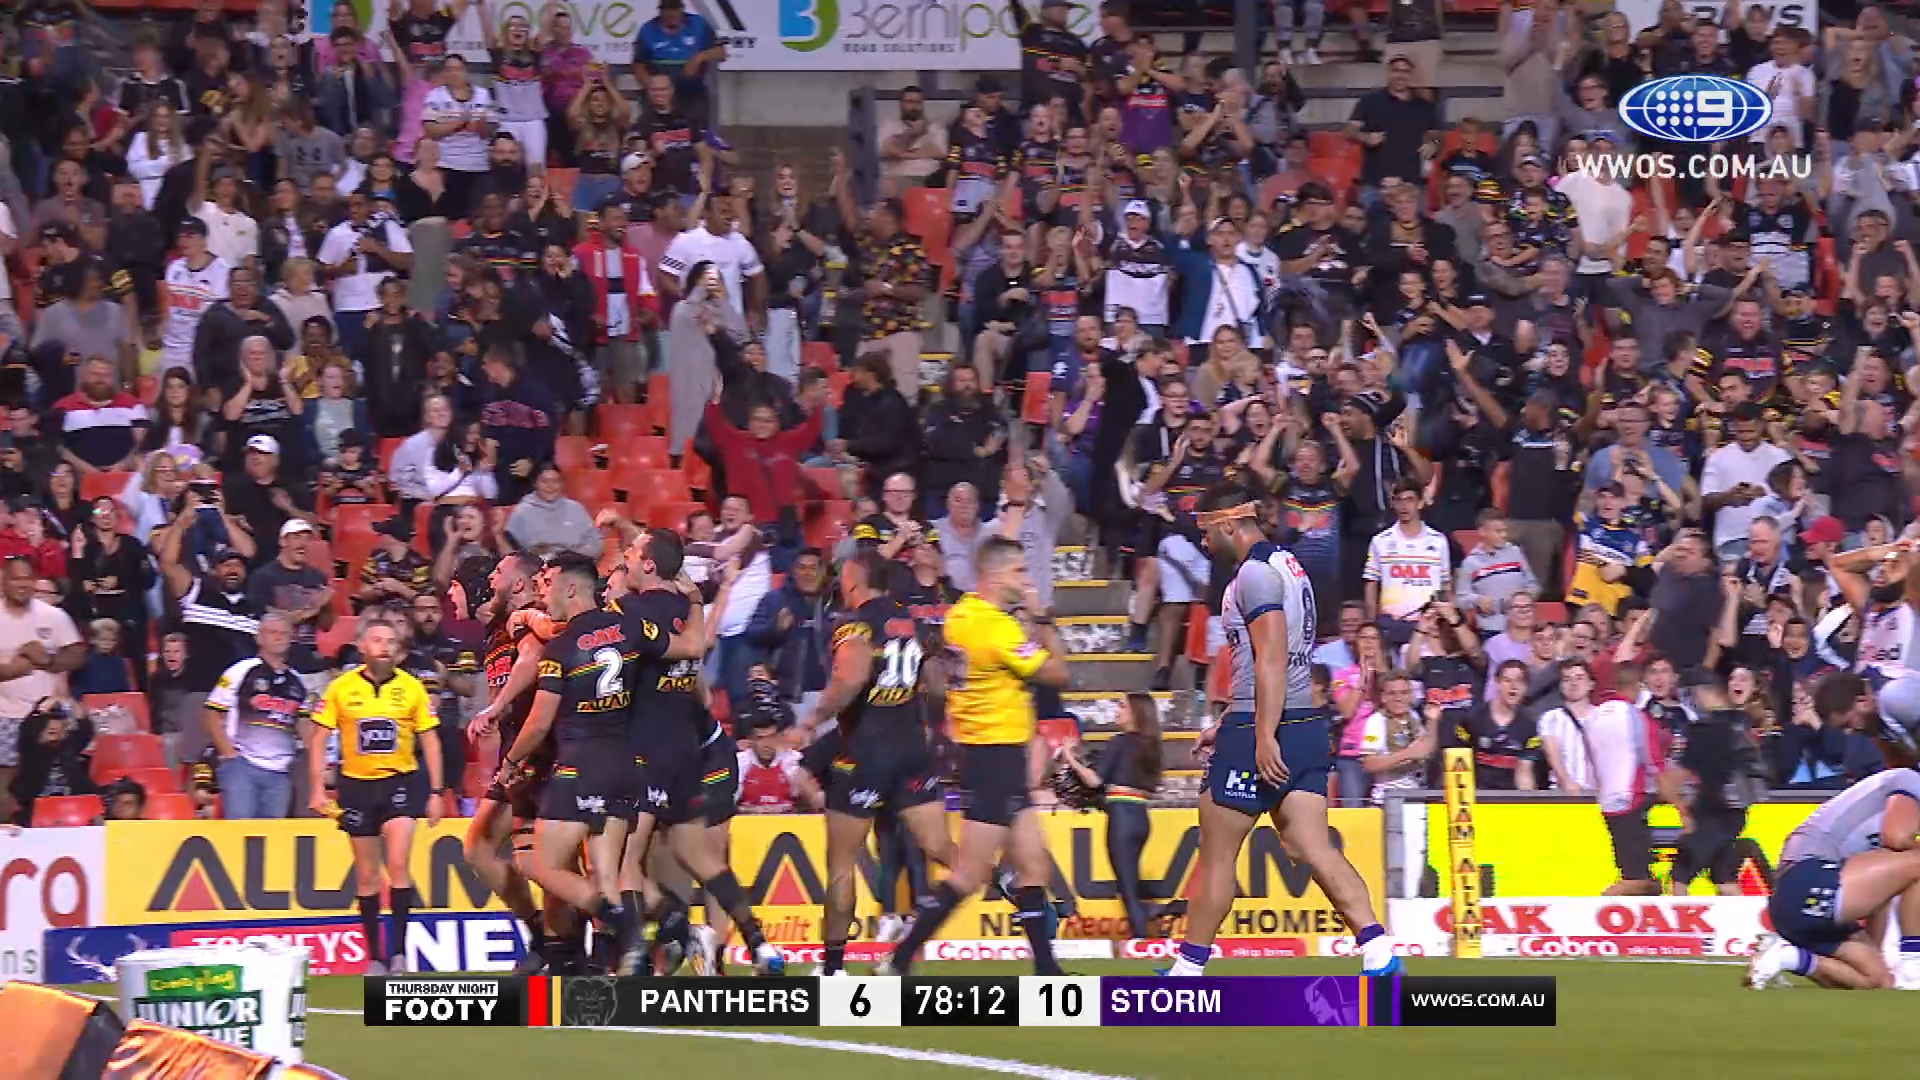 NRL Highlights: The Panthers steal victory from the Storm in the final minutes - Round 3